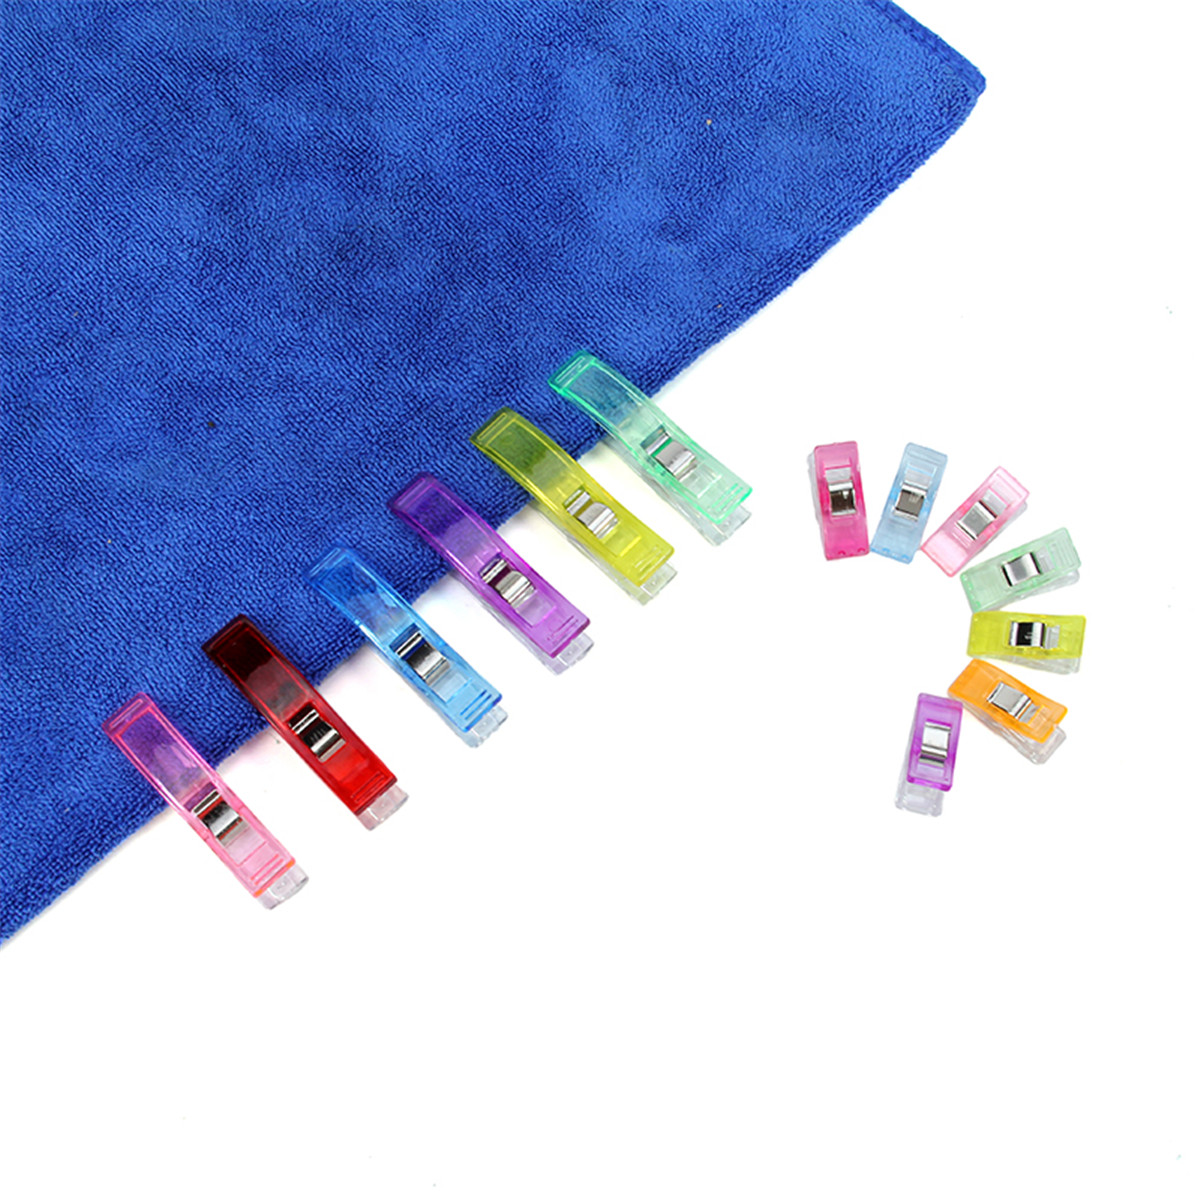 100Pcs Plastic Clips Clamp Craft Holder Cloth Hanger for Sewing Filling Quilt Patchwork